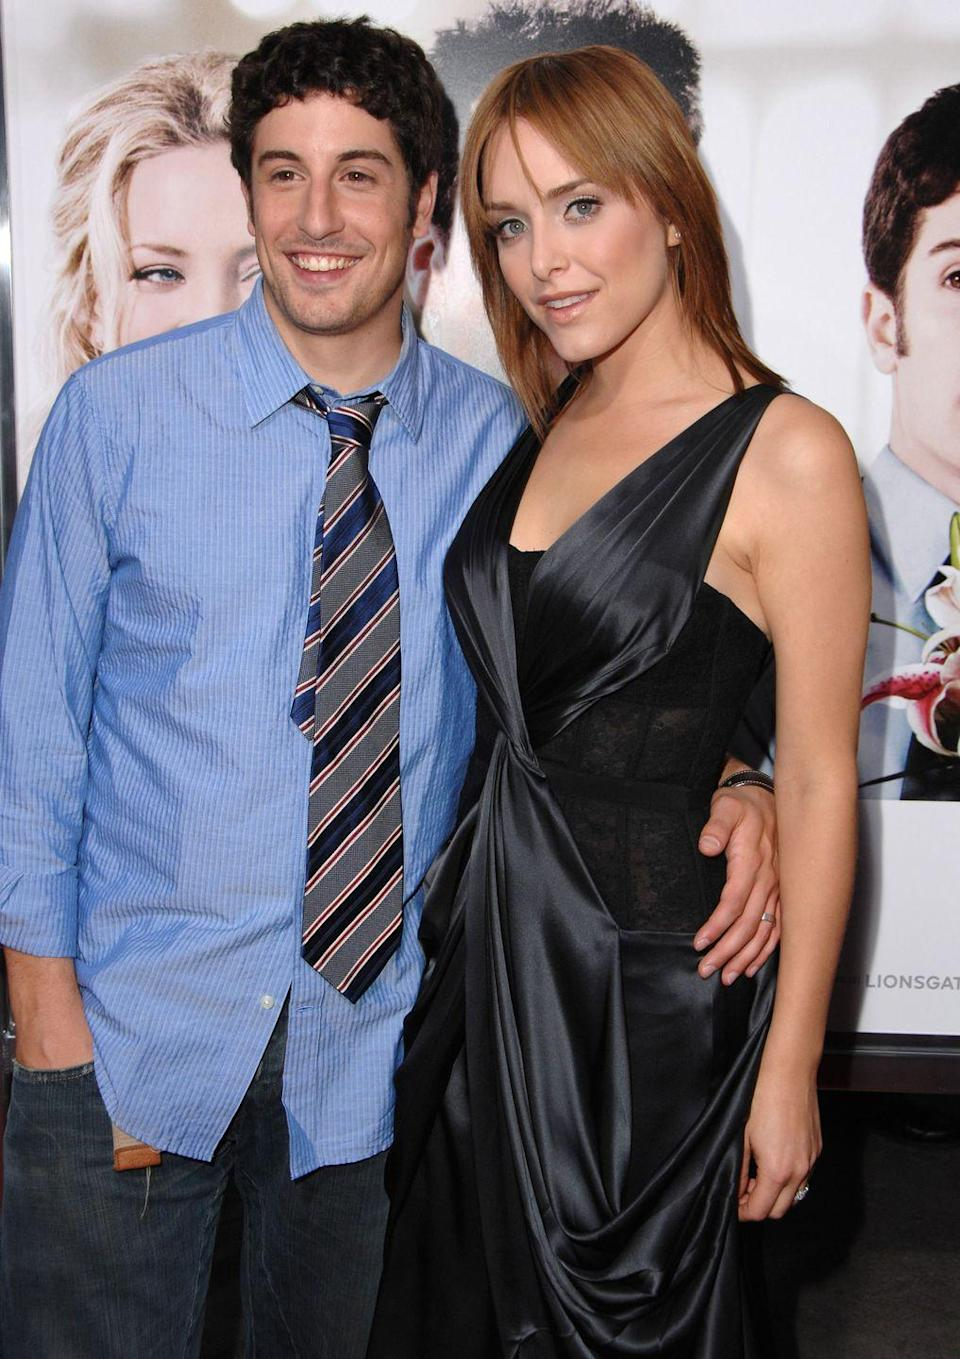 """<p>After meeting on a blind date, Jason Biggs and Jenny Mollen were smitten with one another. They eloped in Los Angeles and three months later had a <a href=""""https://www.eonline.com/uk/news/10110/jason-biggs-little-wedding"""" rel=""""nofollow noopener"""" target=""""_blank"""" data-ylk=""""slk:small ceremony in Napa Valley"""" class=""""link rapid-noclick-resp"""">small ceremony in Napa Valley</a> with friends and family. """"The newlyweds wanted to take in this moment without any distractions,"""" the couple's publicist, Lisa Jammal, <a href=""""https://www.eonline.com/uk/news/10110/jason-biggs-little-wedding"""" rel=""""nofollow noopener"""" target=""""_blank"""" data-ylk=""""slk:shared in a statement"""" class=""""link rapid-noclick-resp"""">shared in a statement</a> about their elopement.</p>"""